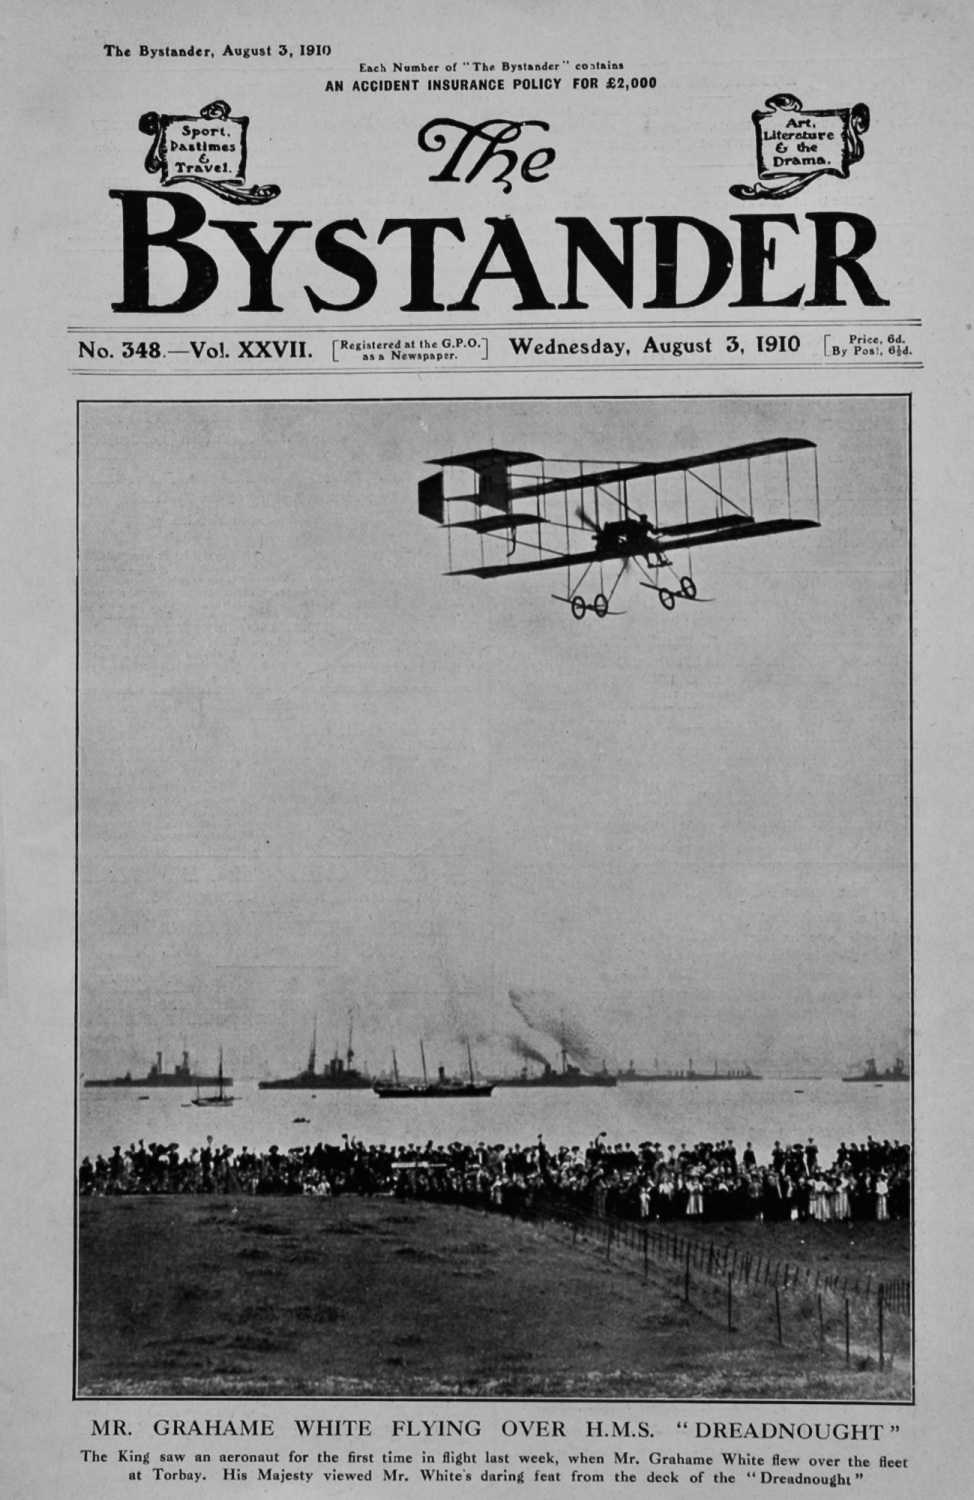 The Bystander Aug 3rd 1910.